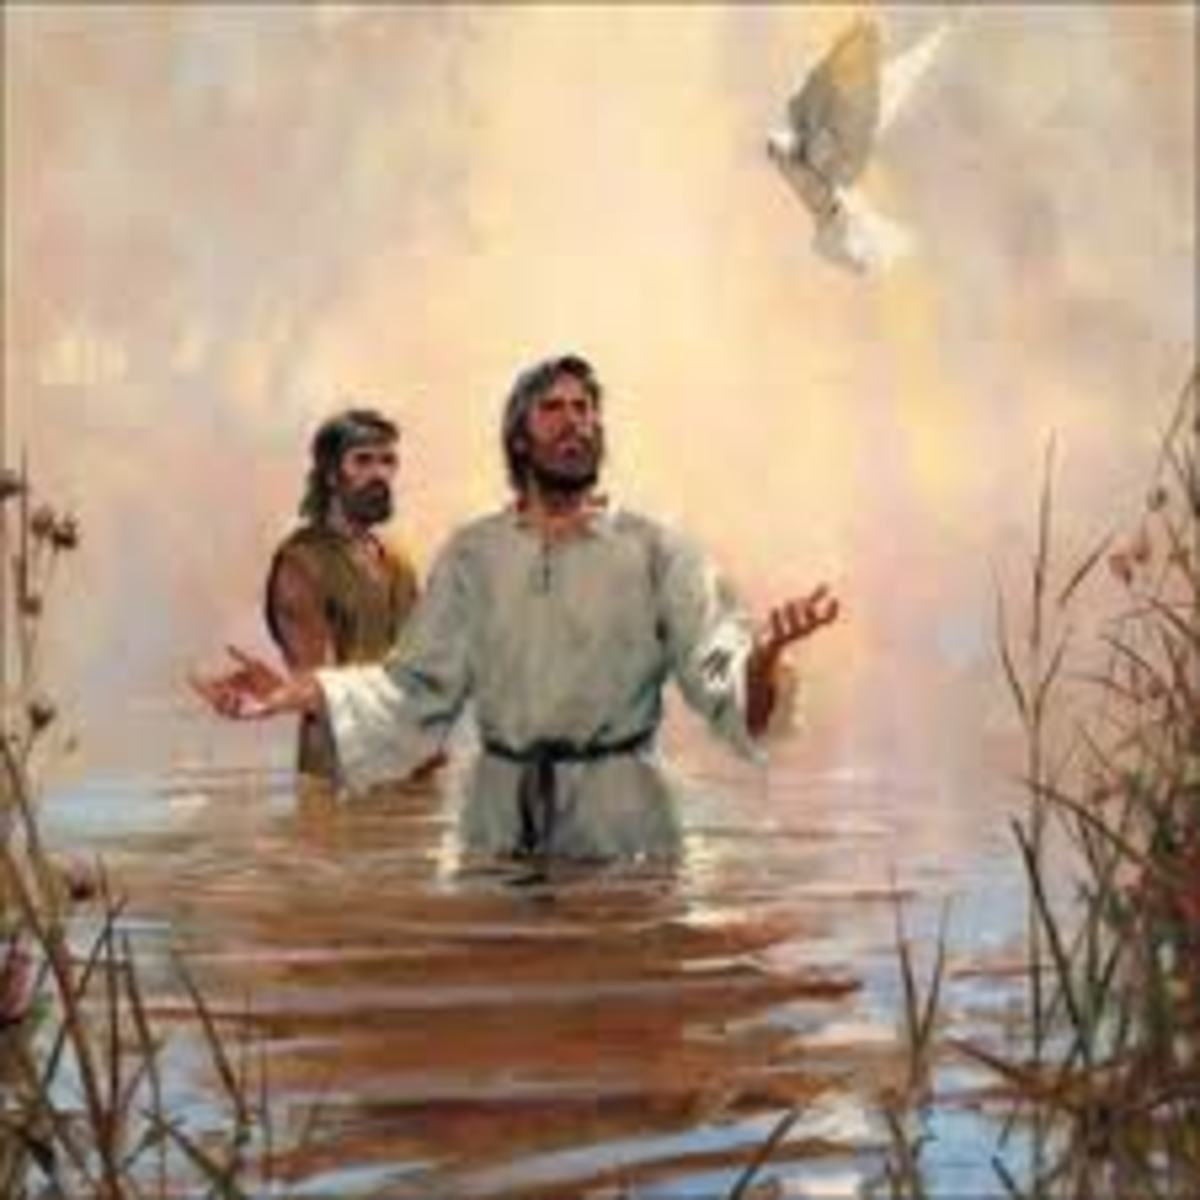 The Baptism of Christ, where the dove comes down out of the torn skies and God speaks of his pleasure in the life of Christ.